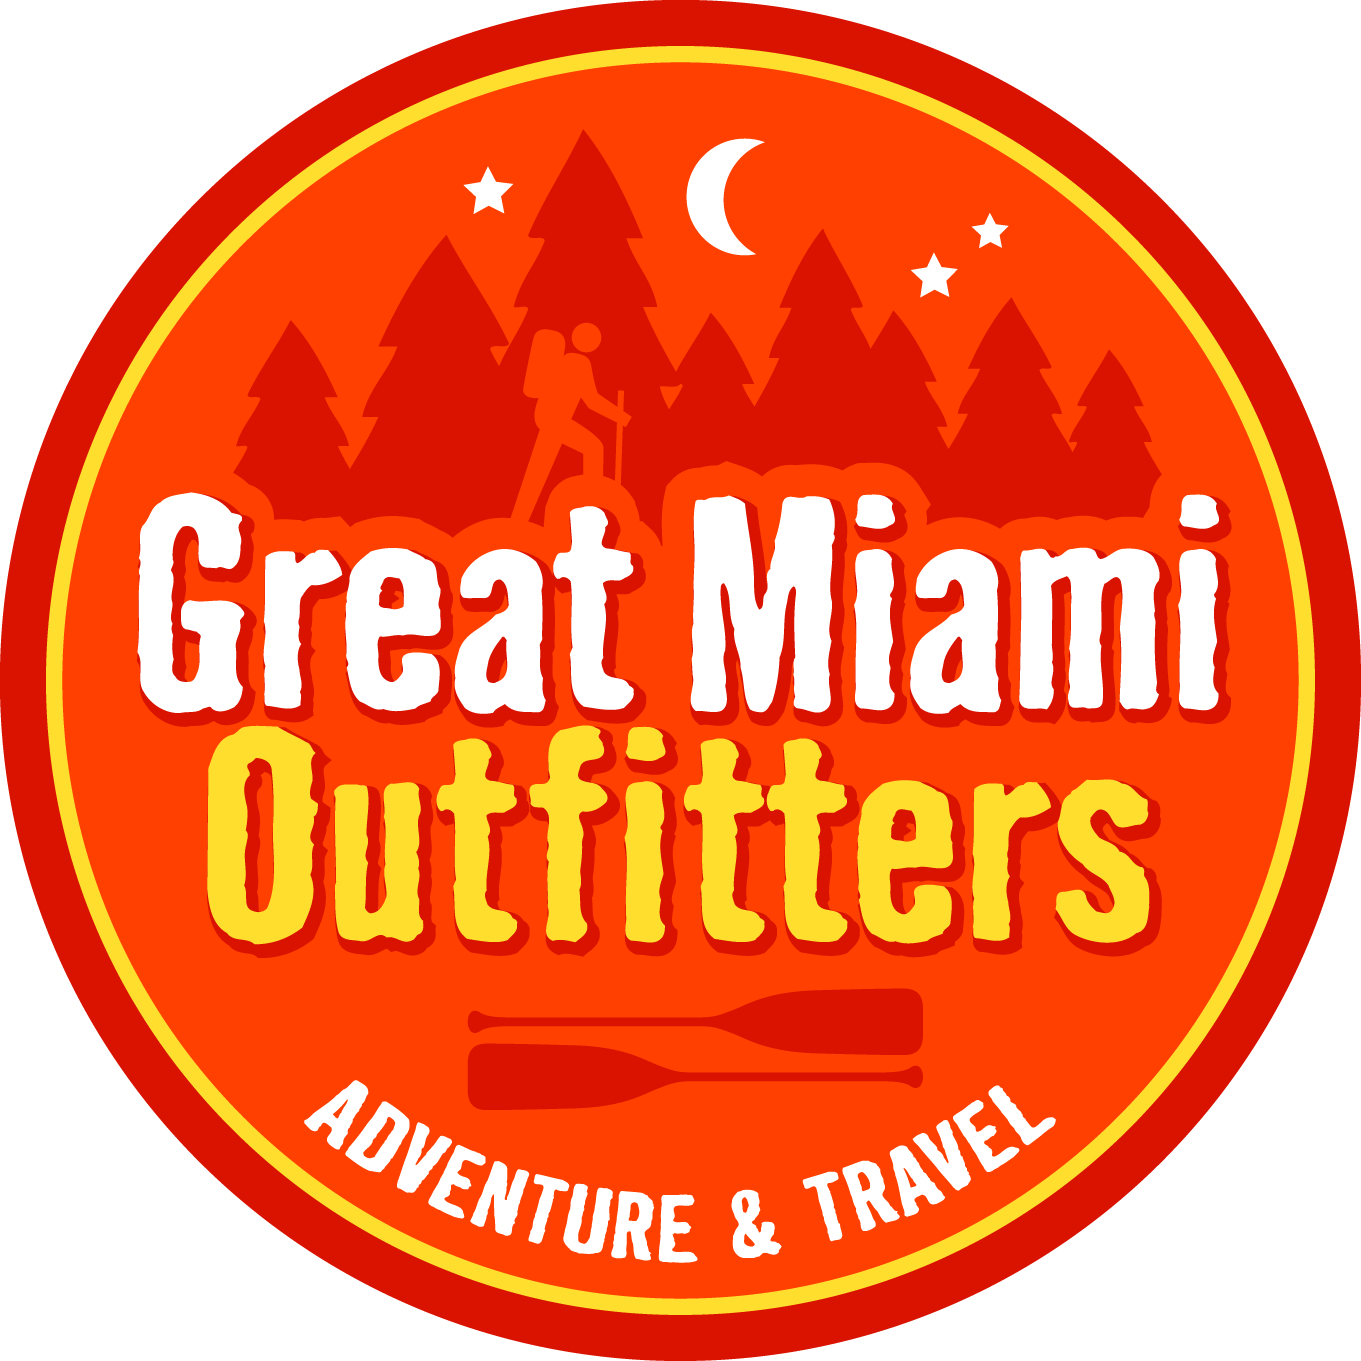 GREAT MIAMI OUTFITTERS - Great Miami Outfitters is a premier supplier of outdoor gear and apparel for outdoor enthusiasts in the greater Miami Valley, while being an information resource of area outdoor activities and facilities. Our staff is passionate about the great outdoors. We are knowledgeable about outdoor activities and the products we sell. Our enthusiasm and knowledge helps our customers enjoy the great outdoors with the right gear!